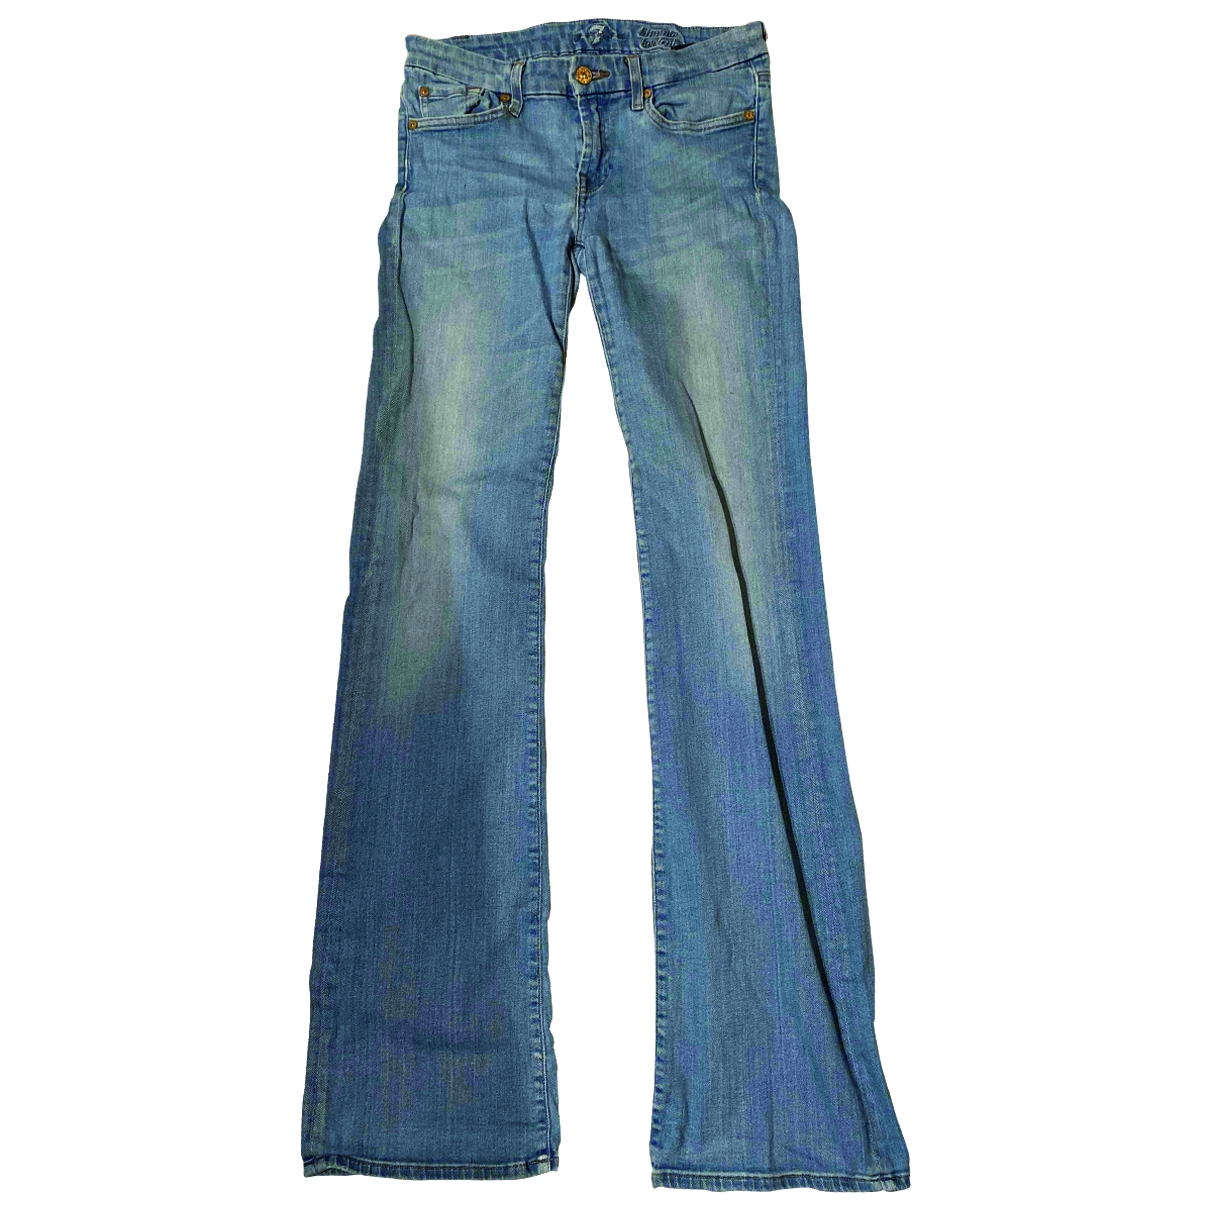 7 For All Mankind \N Blue Denim - Jeans Jeans for Women 29 US